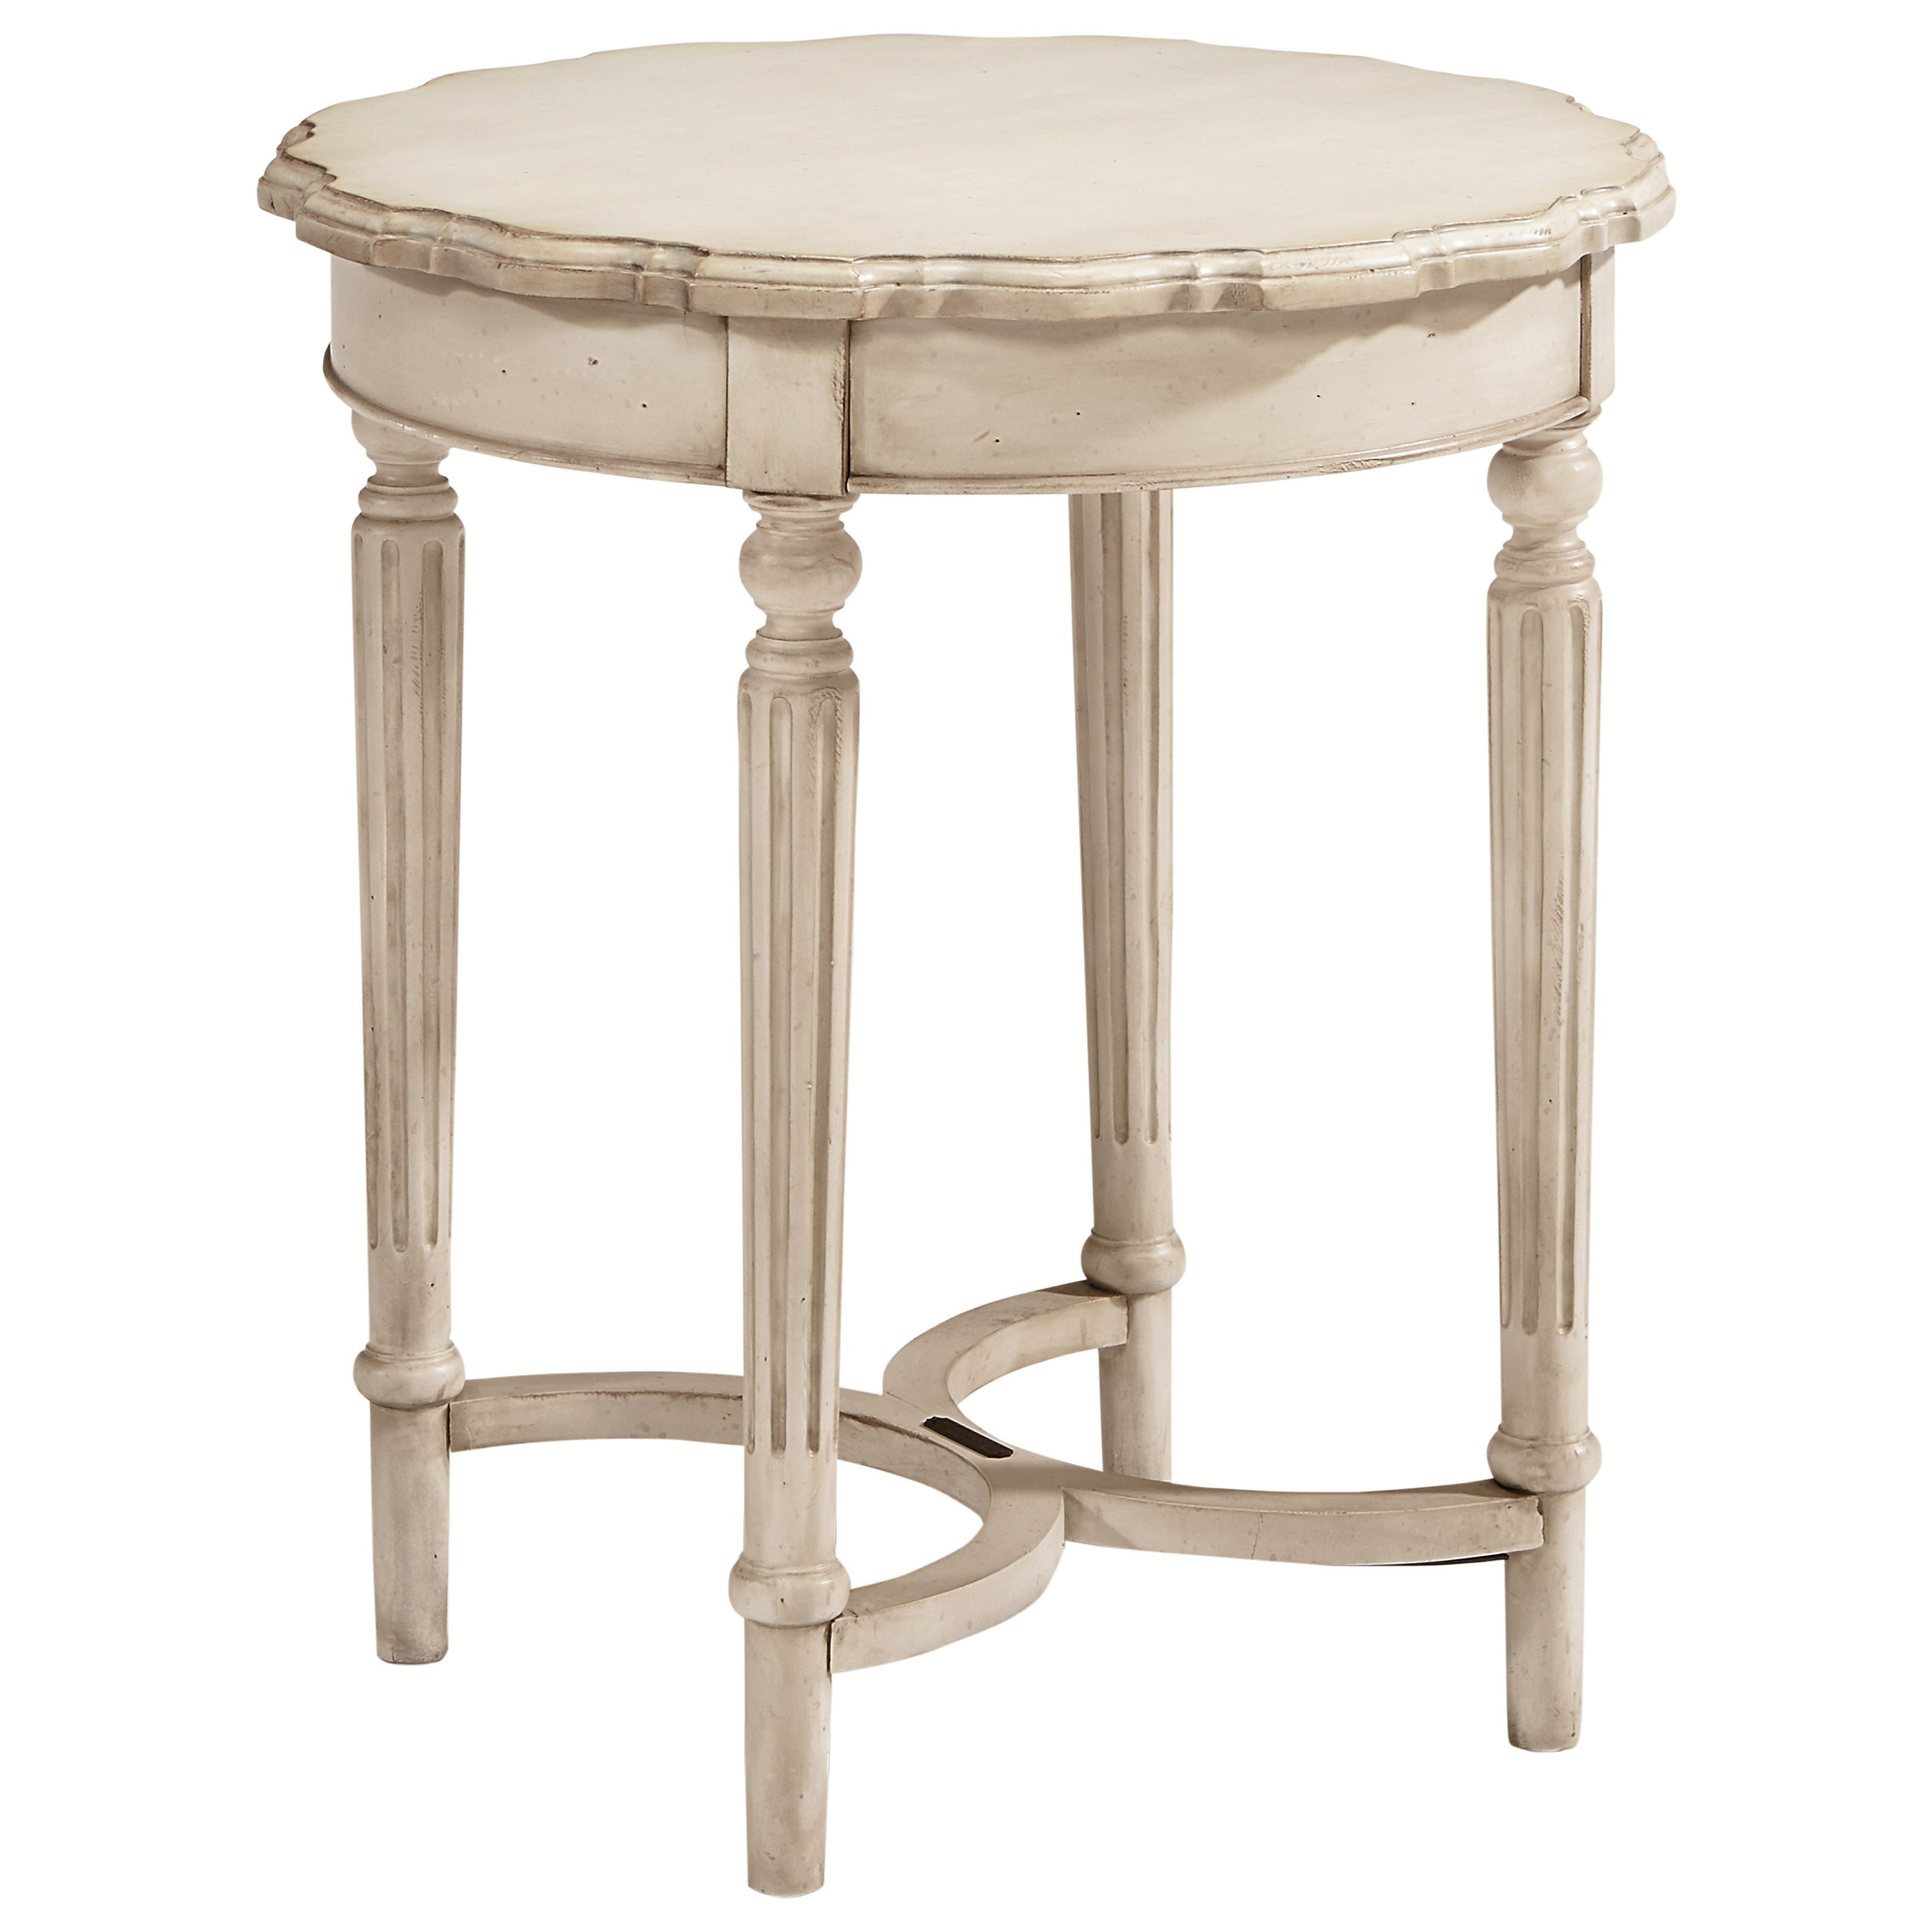 Magnolia Home By Joanna Gaines French Inspired Tall Pie Crust Table Item Number 3020102g